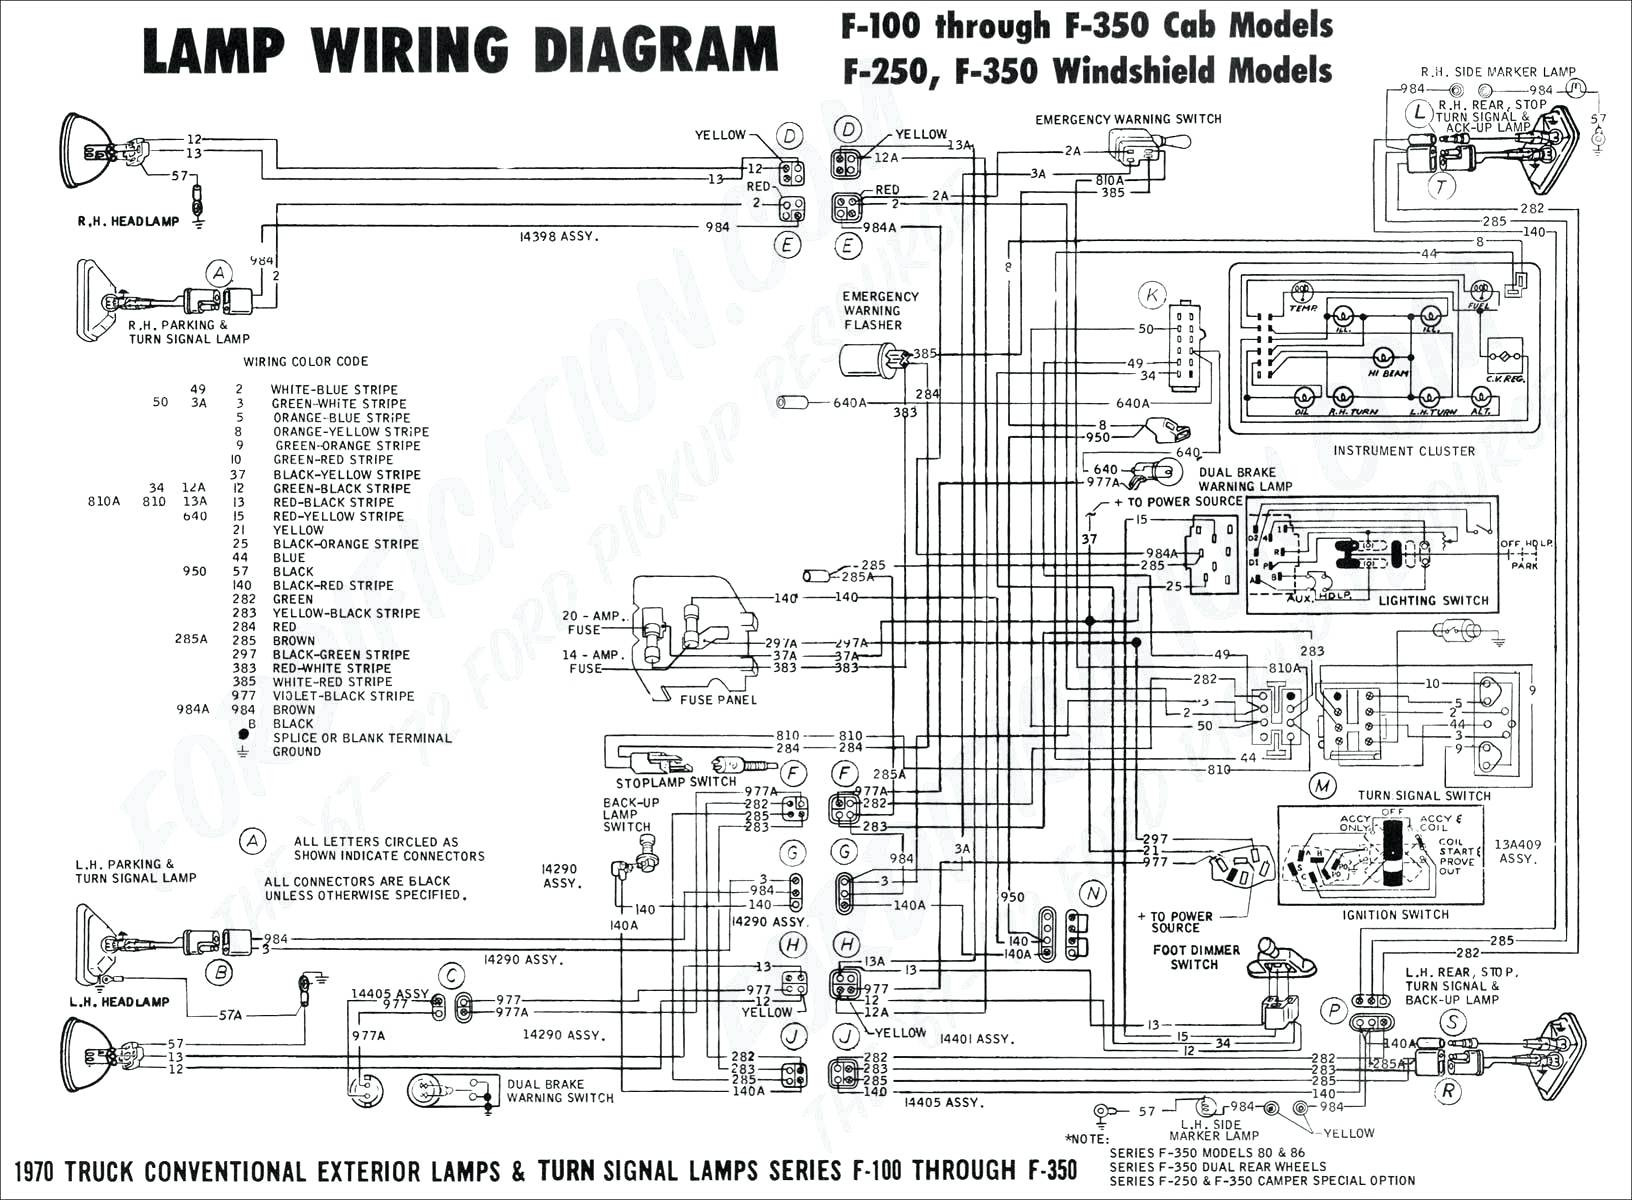 2008 F550 Wiring Diagram - All Diagram Schematics F Cab Light Wiring Diagram on